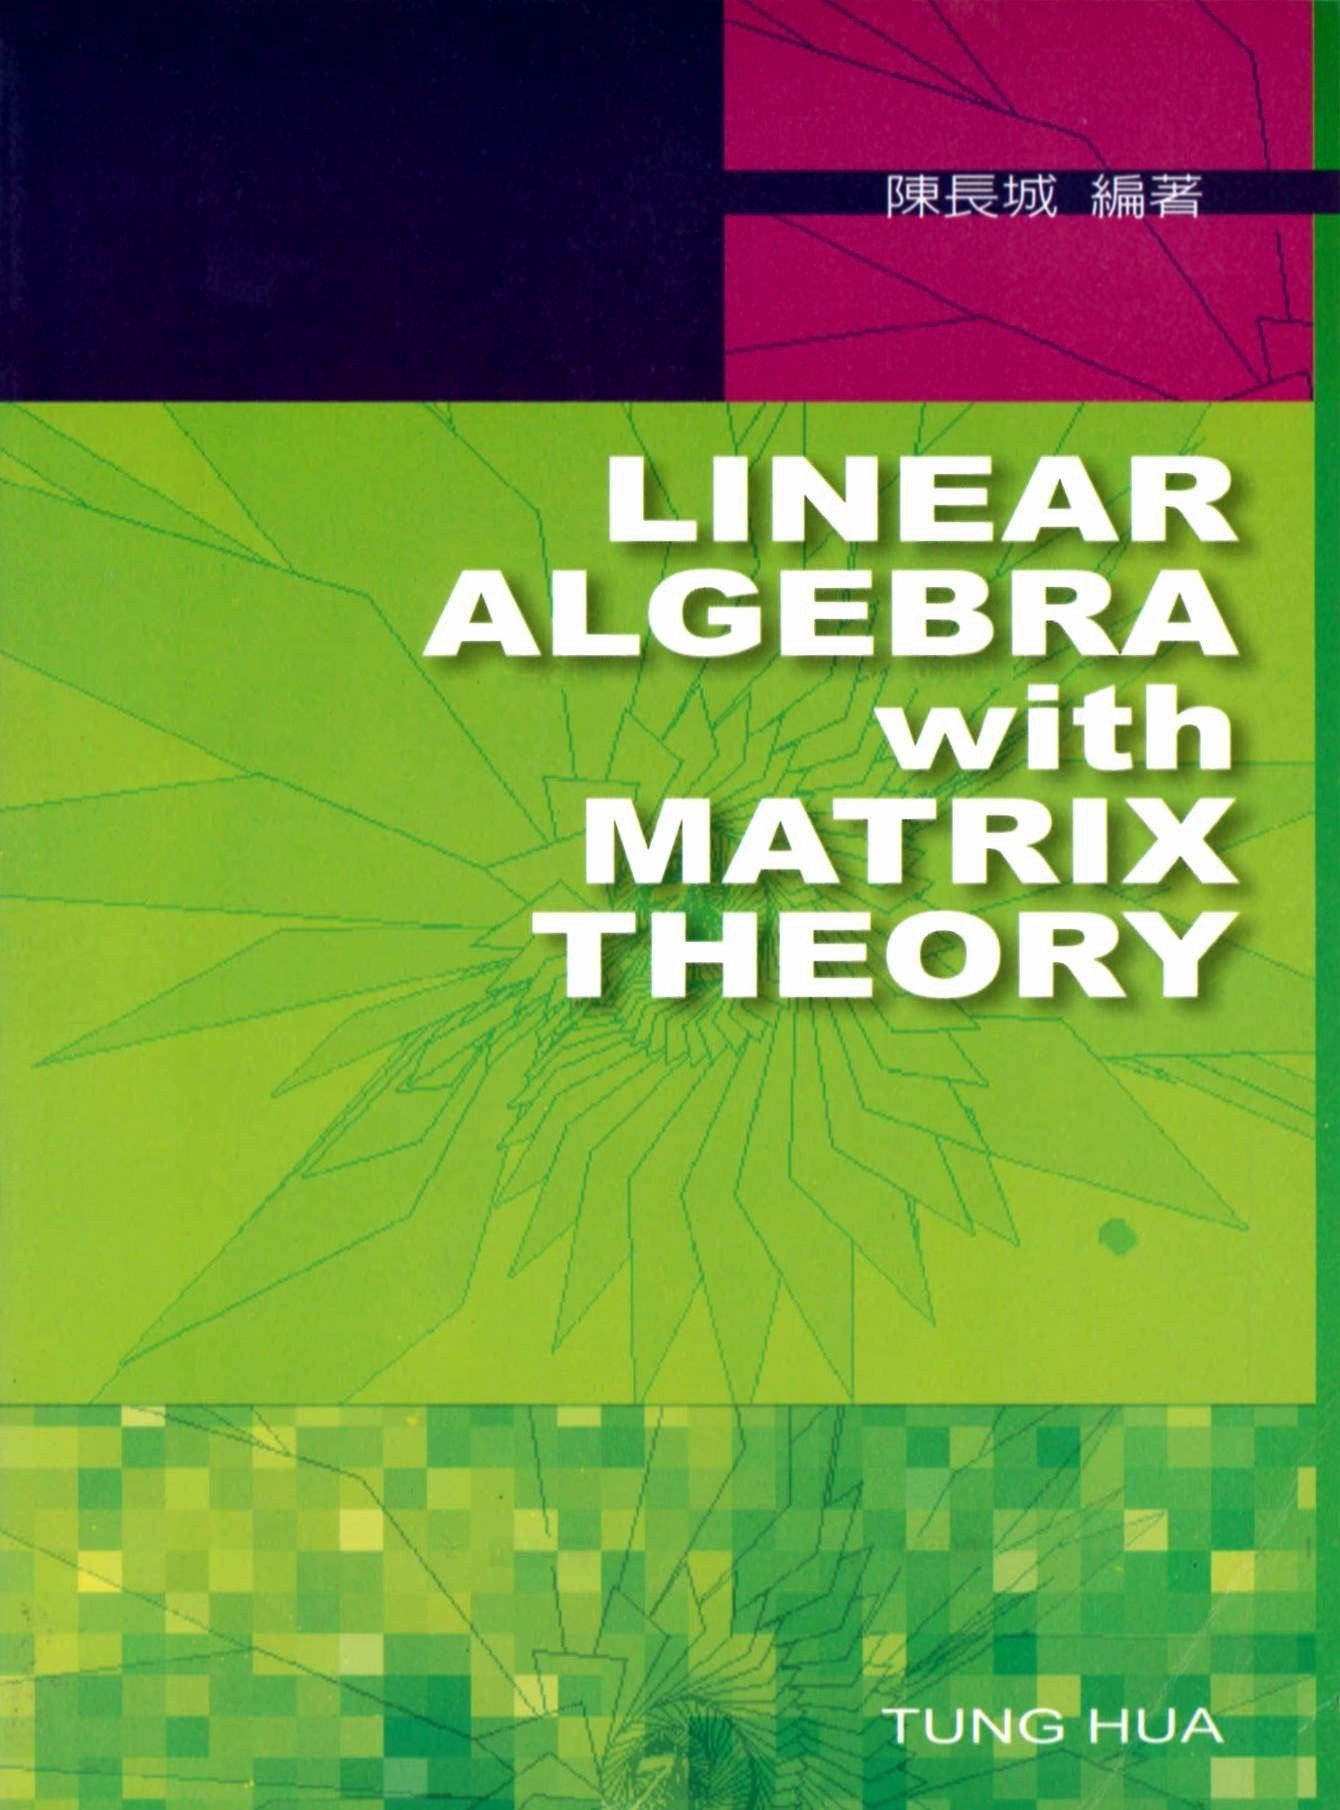 線性代數與矩陣理論 Linear Algebra with Matrix Theory